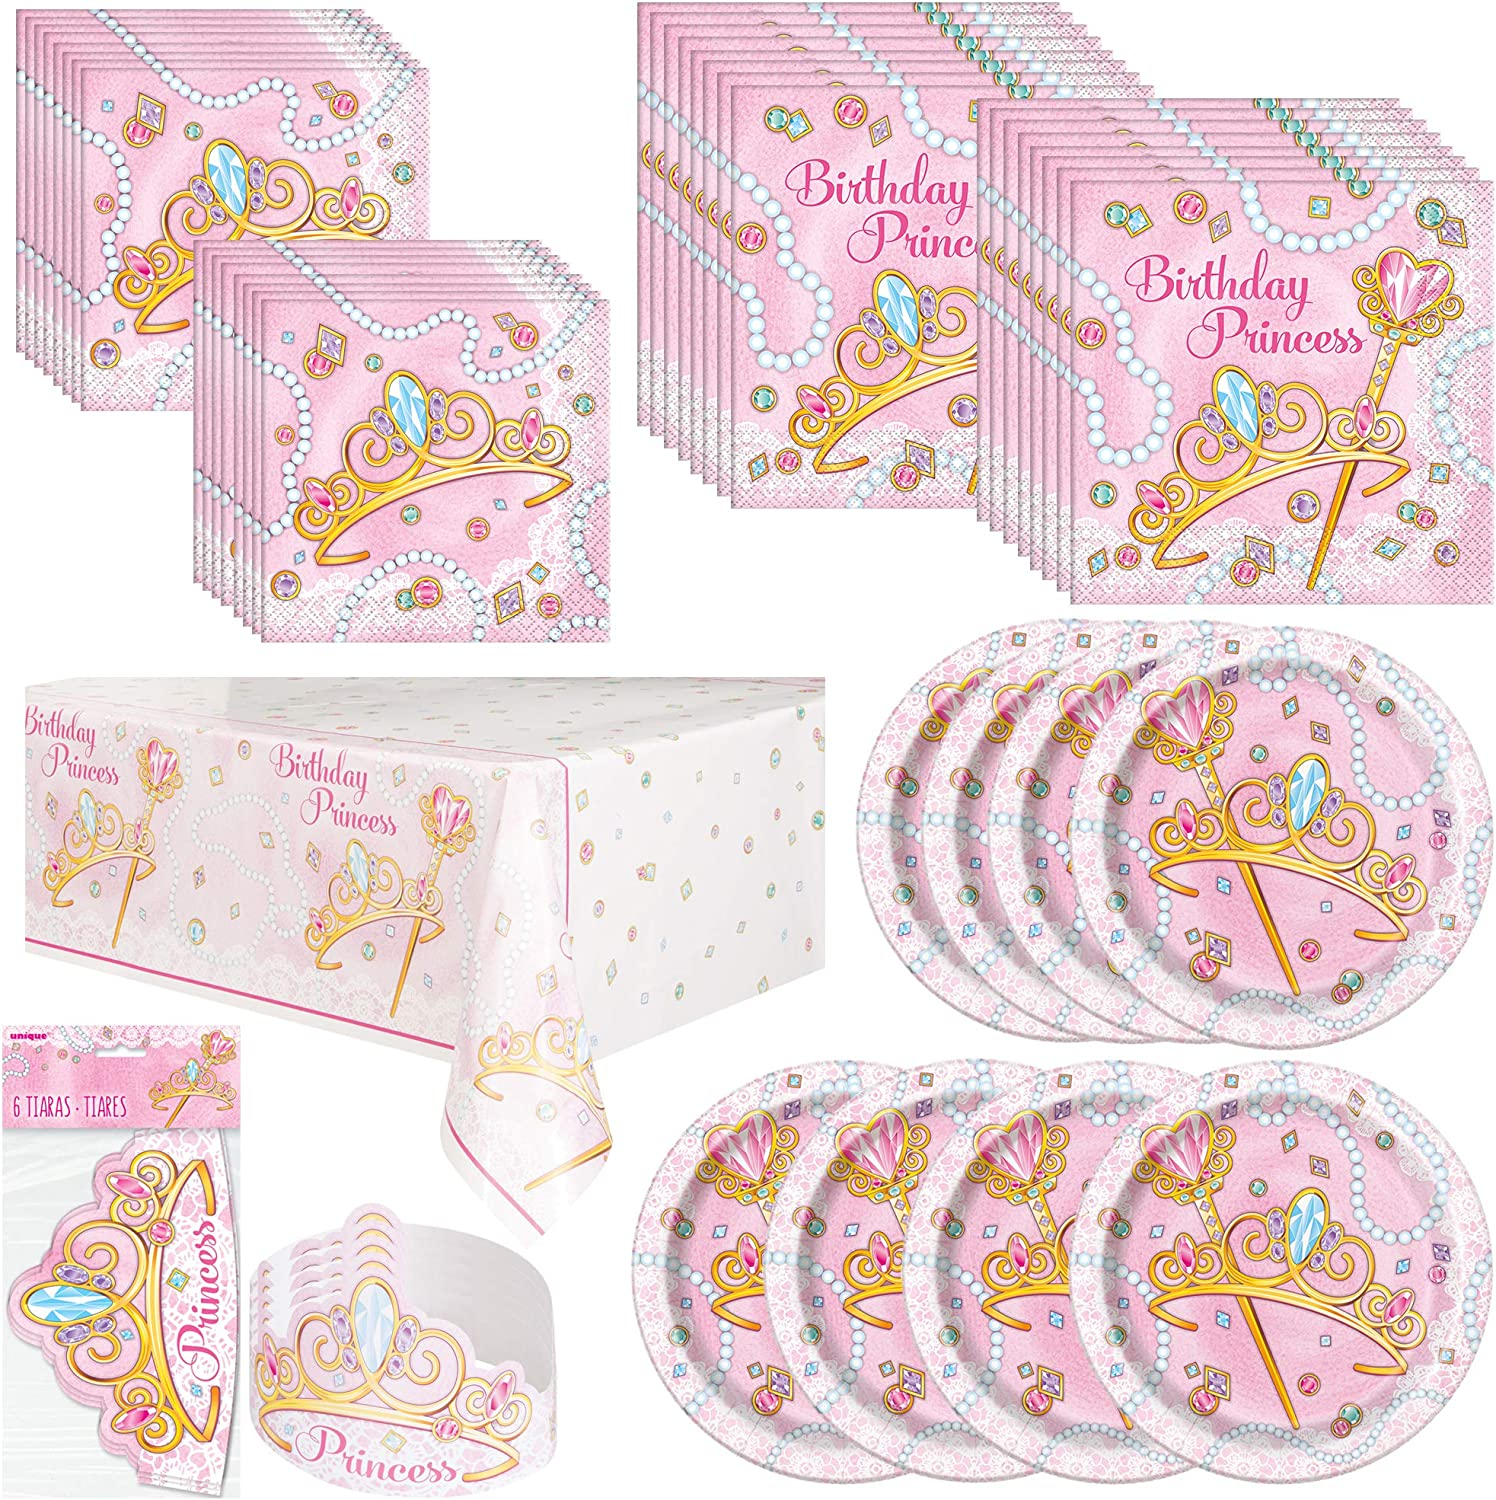 Unique Pink Princess Party Bundle   Luncheon & Beverage Napkins, Plates, Tiaras, Table Cover   Great for Fairytale/Royal Birthday Themed Parties